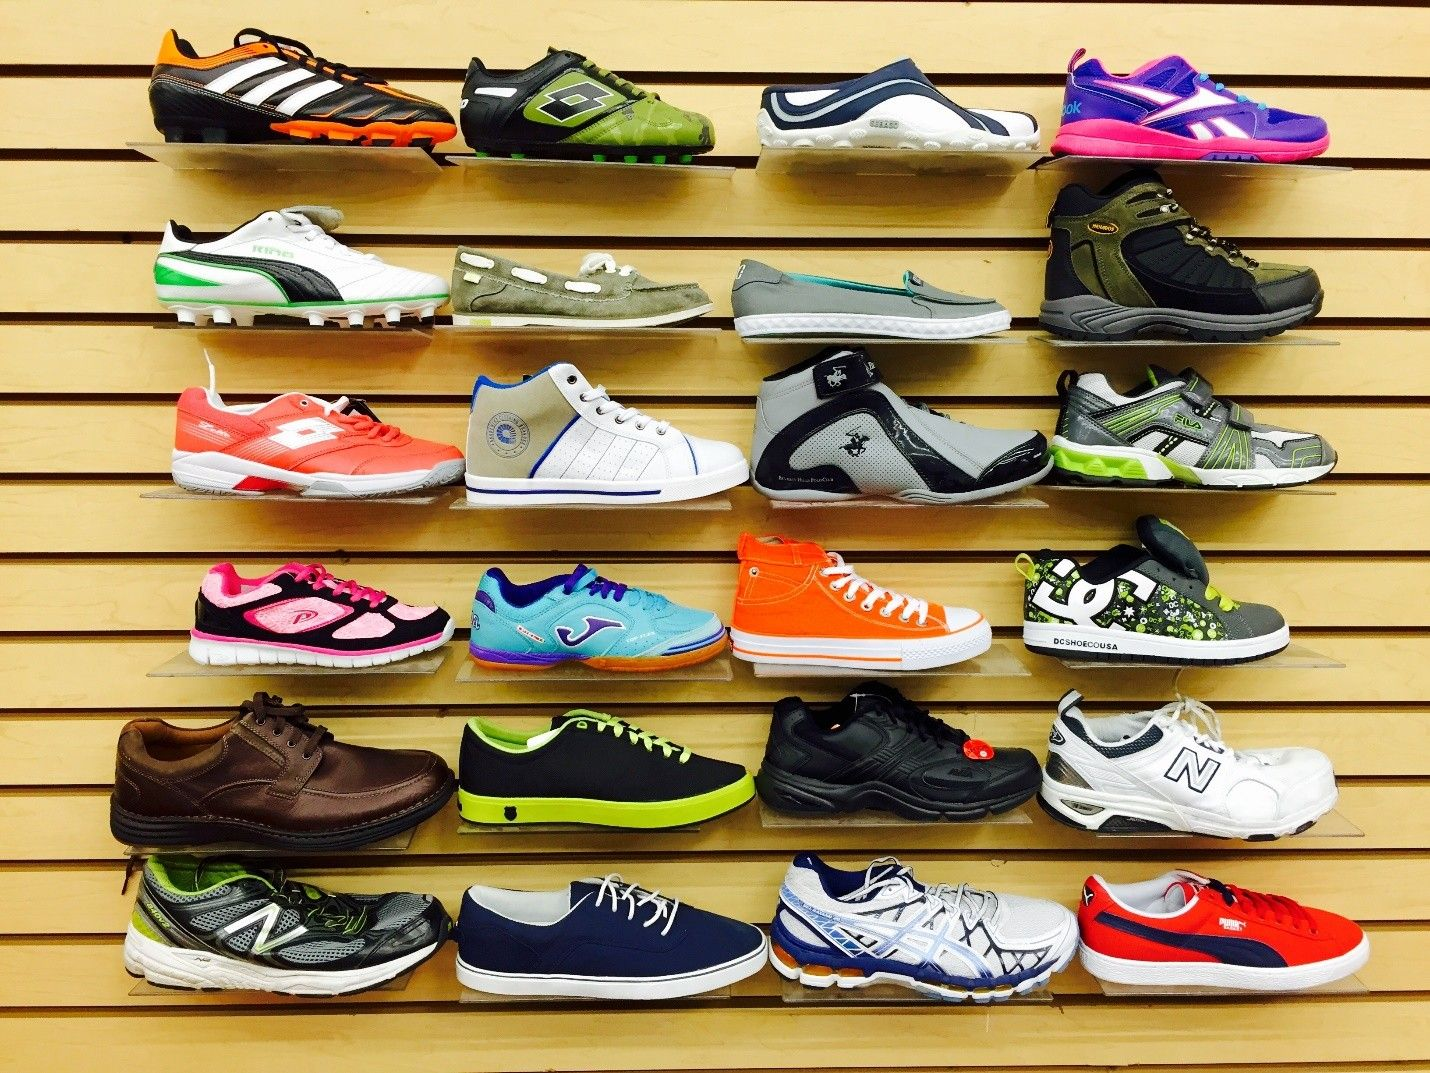 Sports shoes, Spring shoes, Shoe brands